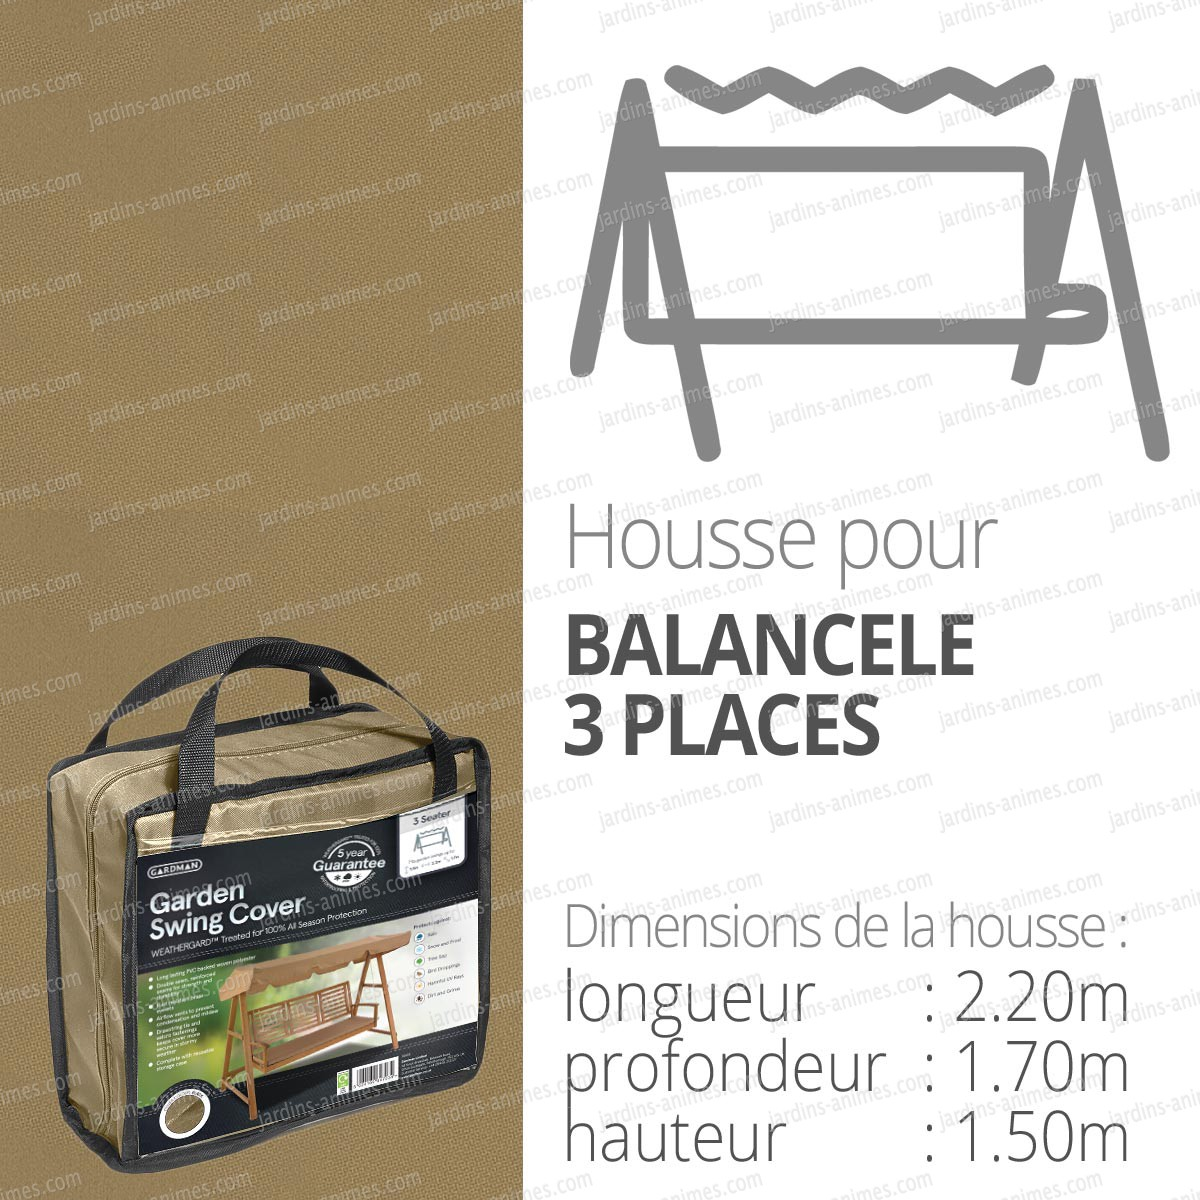 Housse bache protection balancelle 3 places long 220cm couleur beige prote - Housse klippan 3 places ...